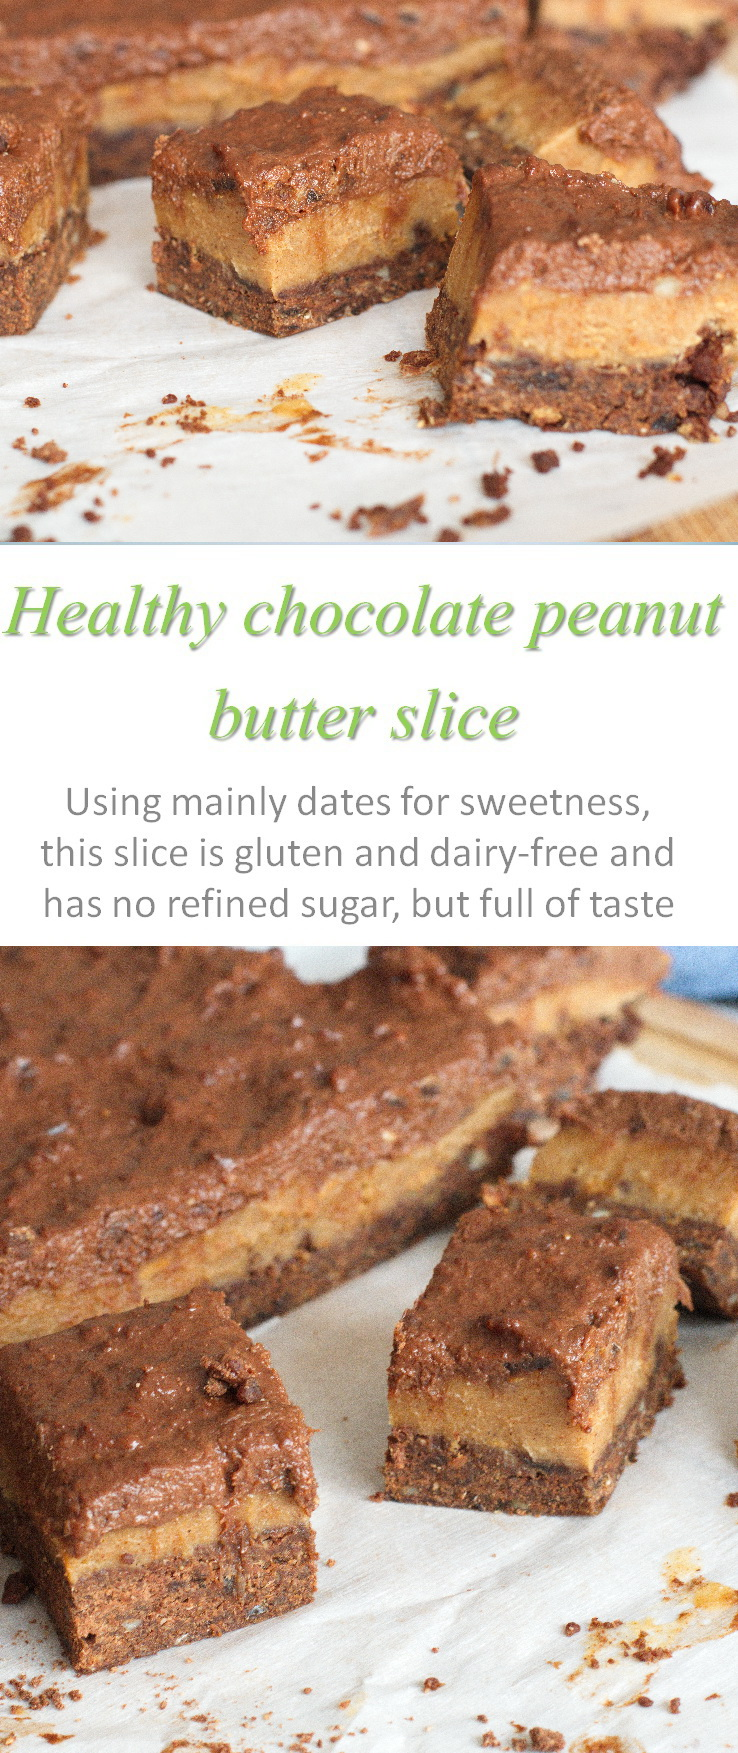 Another chocolate and peanut butter slice using all natural, non-processed ingredients, and your food processor, to produce heaven in your mouth! #peanutbutter